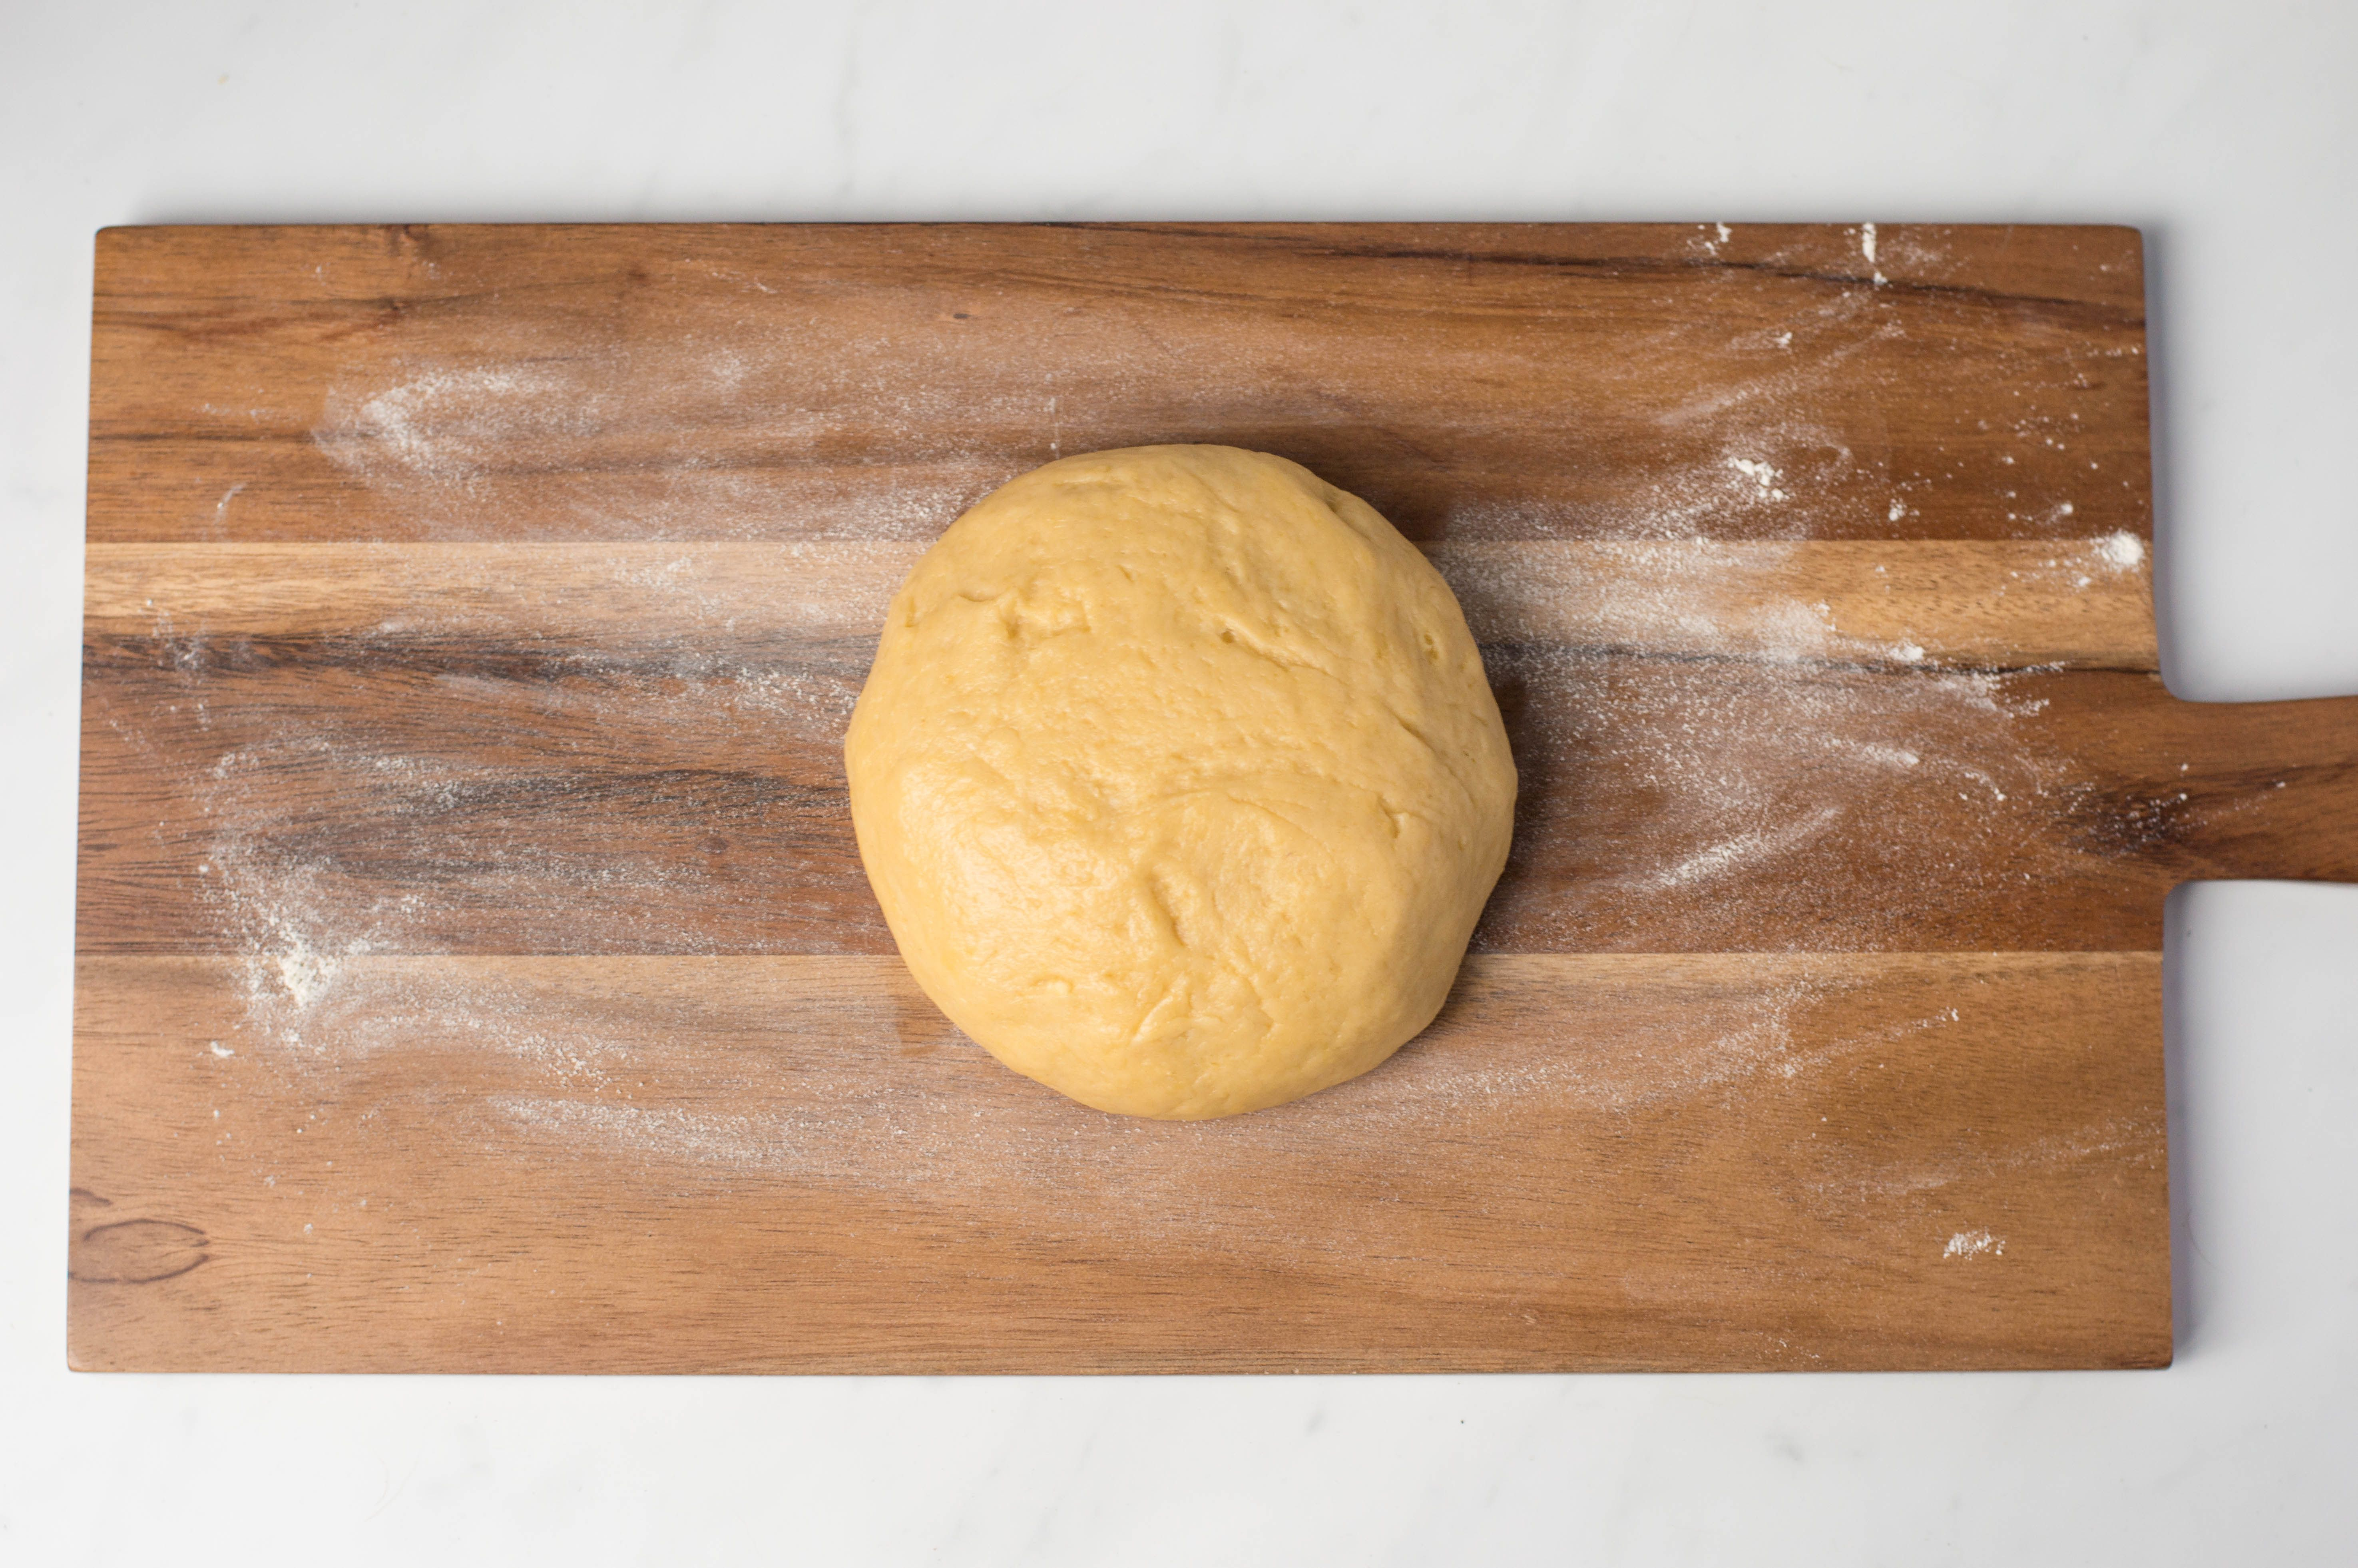 Hot water pastry dough on wooden cutting board